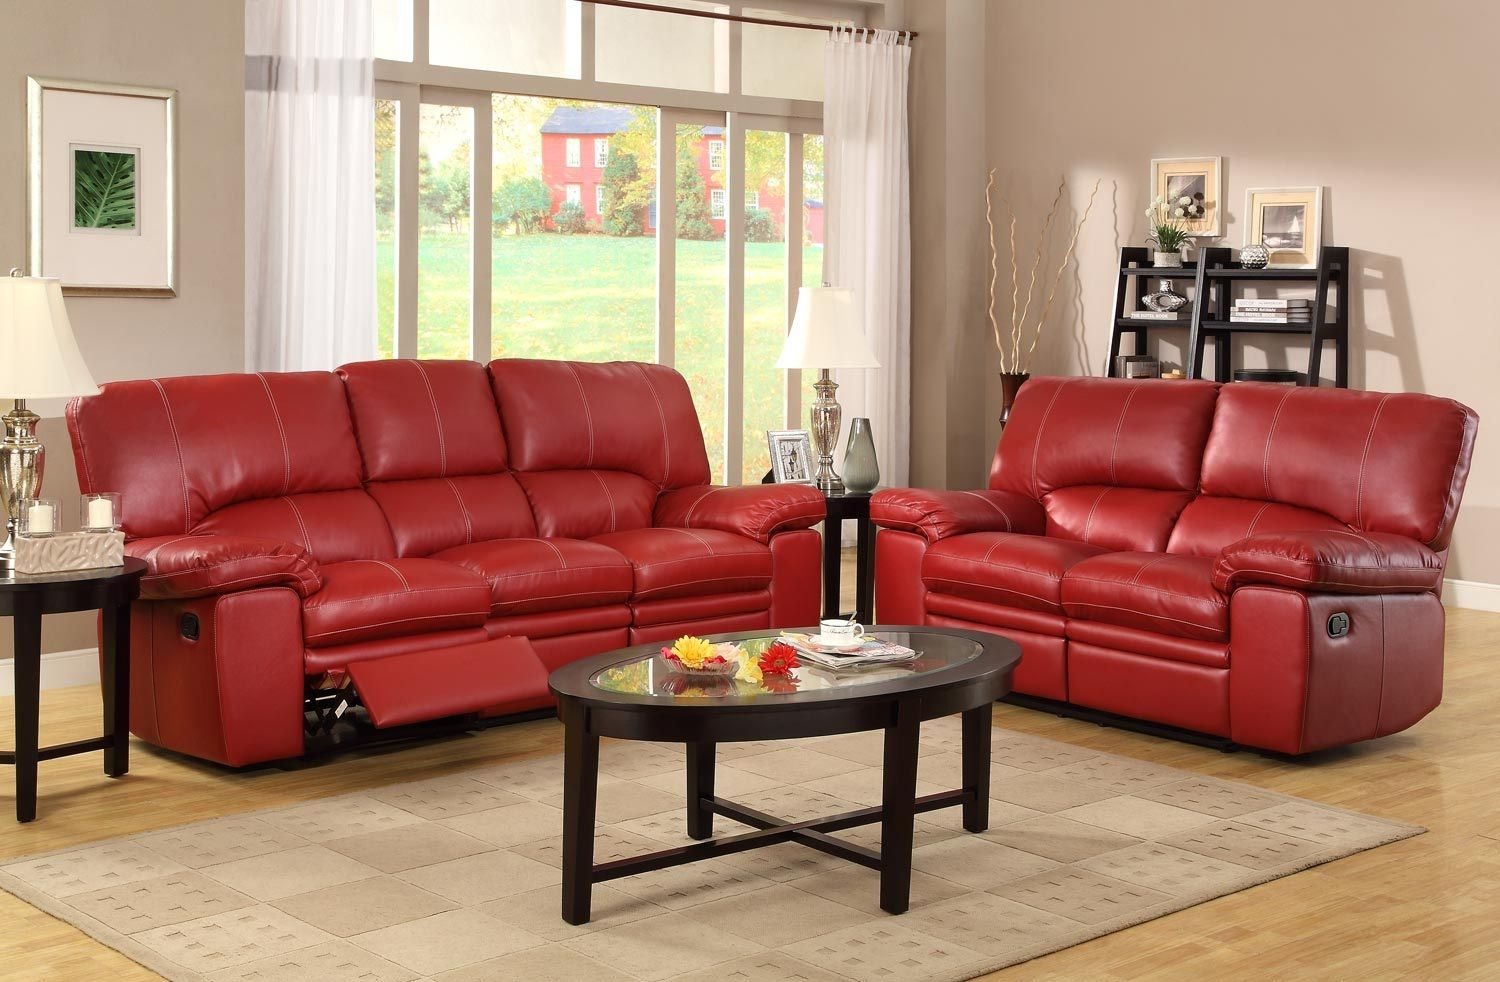 bold statement   living area   red